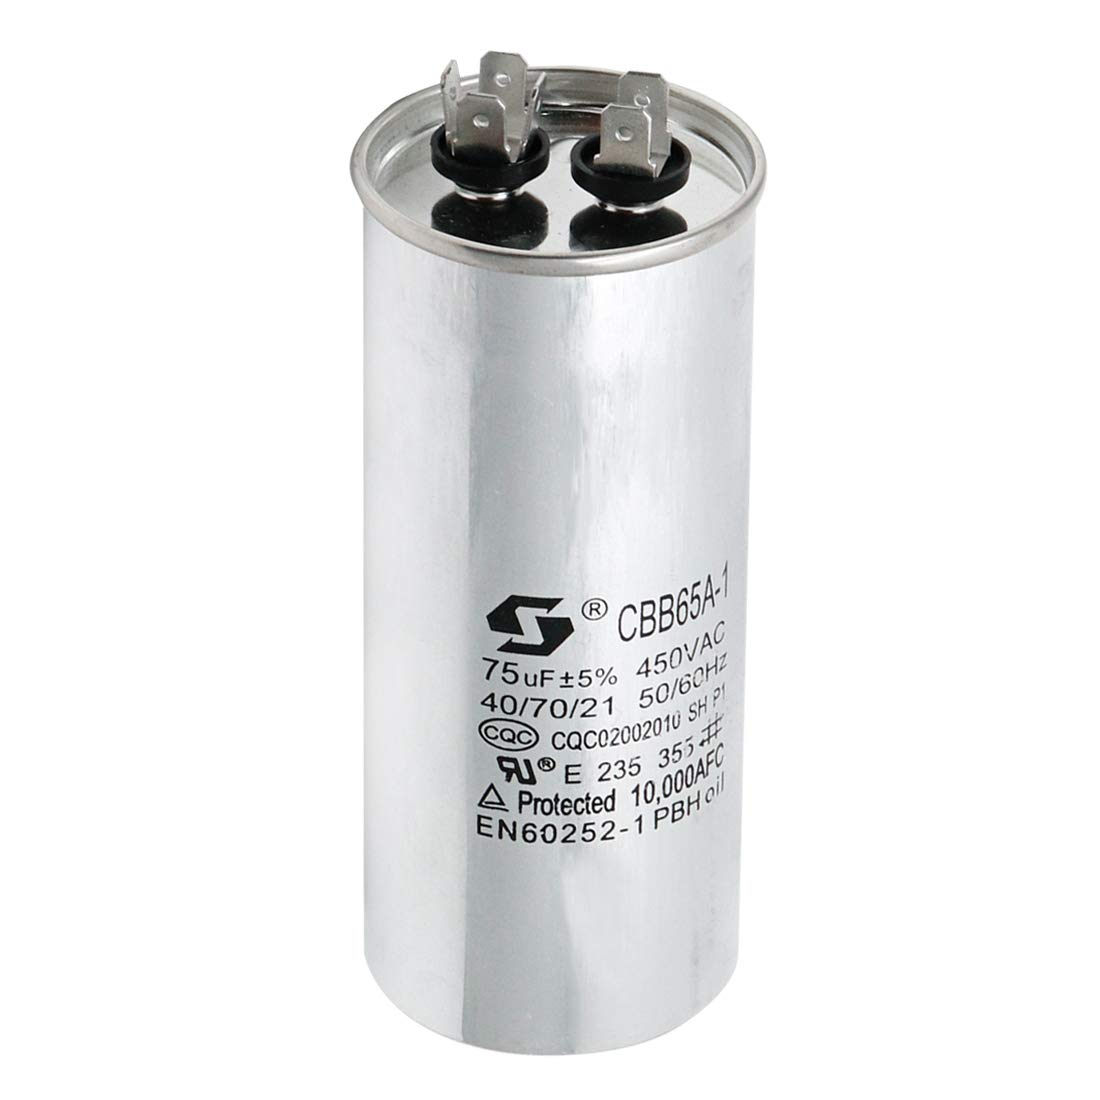 Sydien Cylindrical CBB65 Motor Run Capacitor 75UF for Running Air Conditioners with Frequency of 50Hz/60Hz & High-Power Lighting